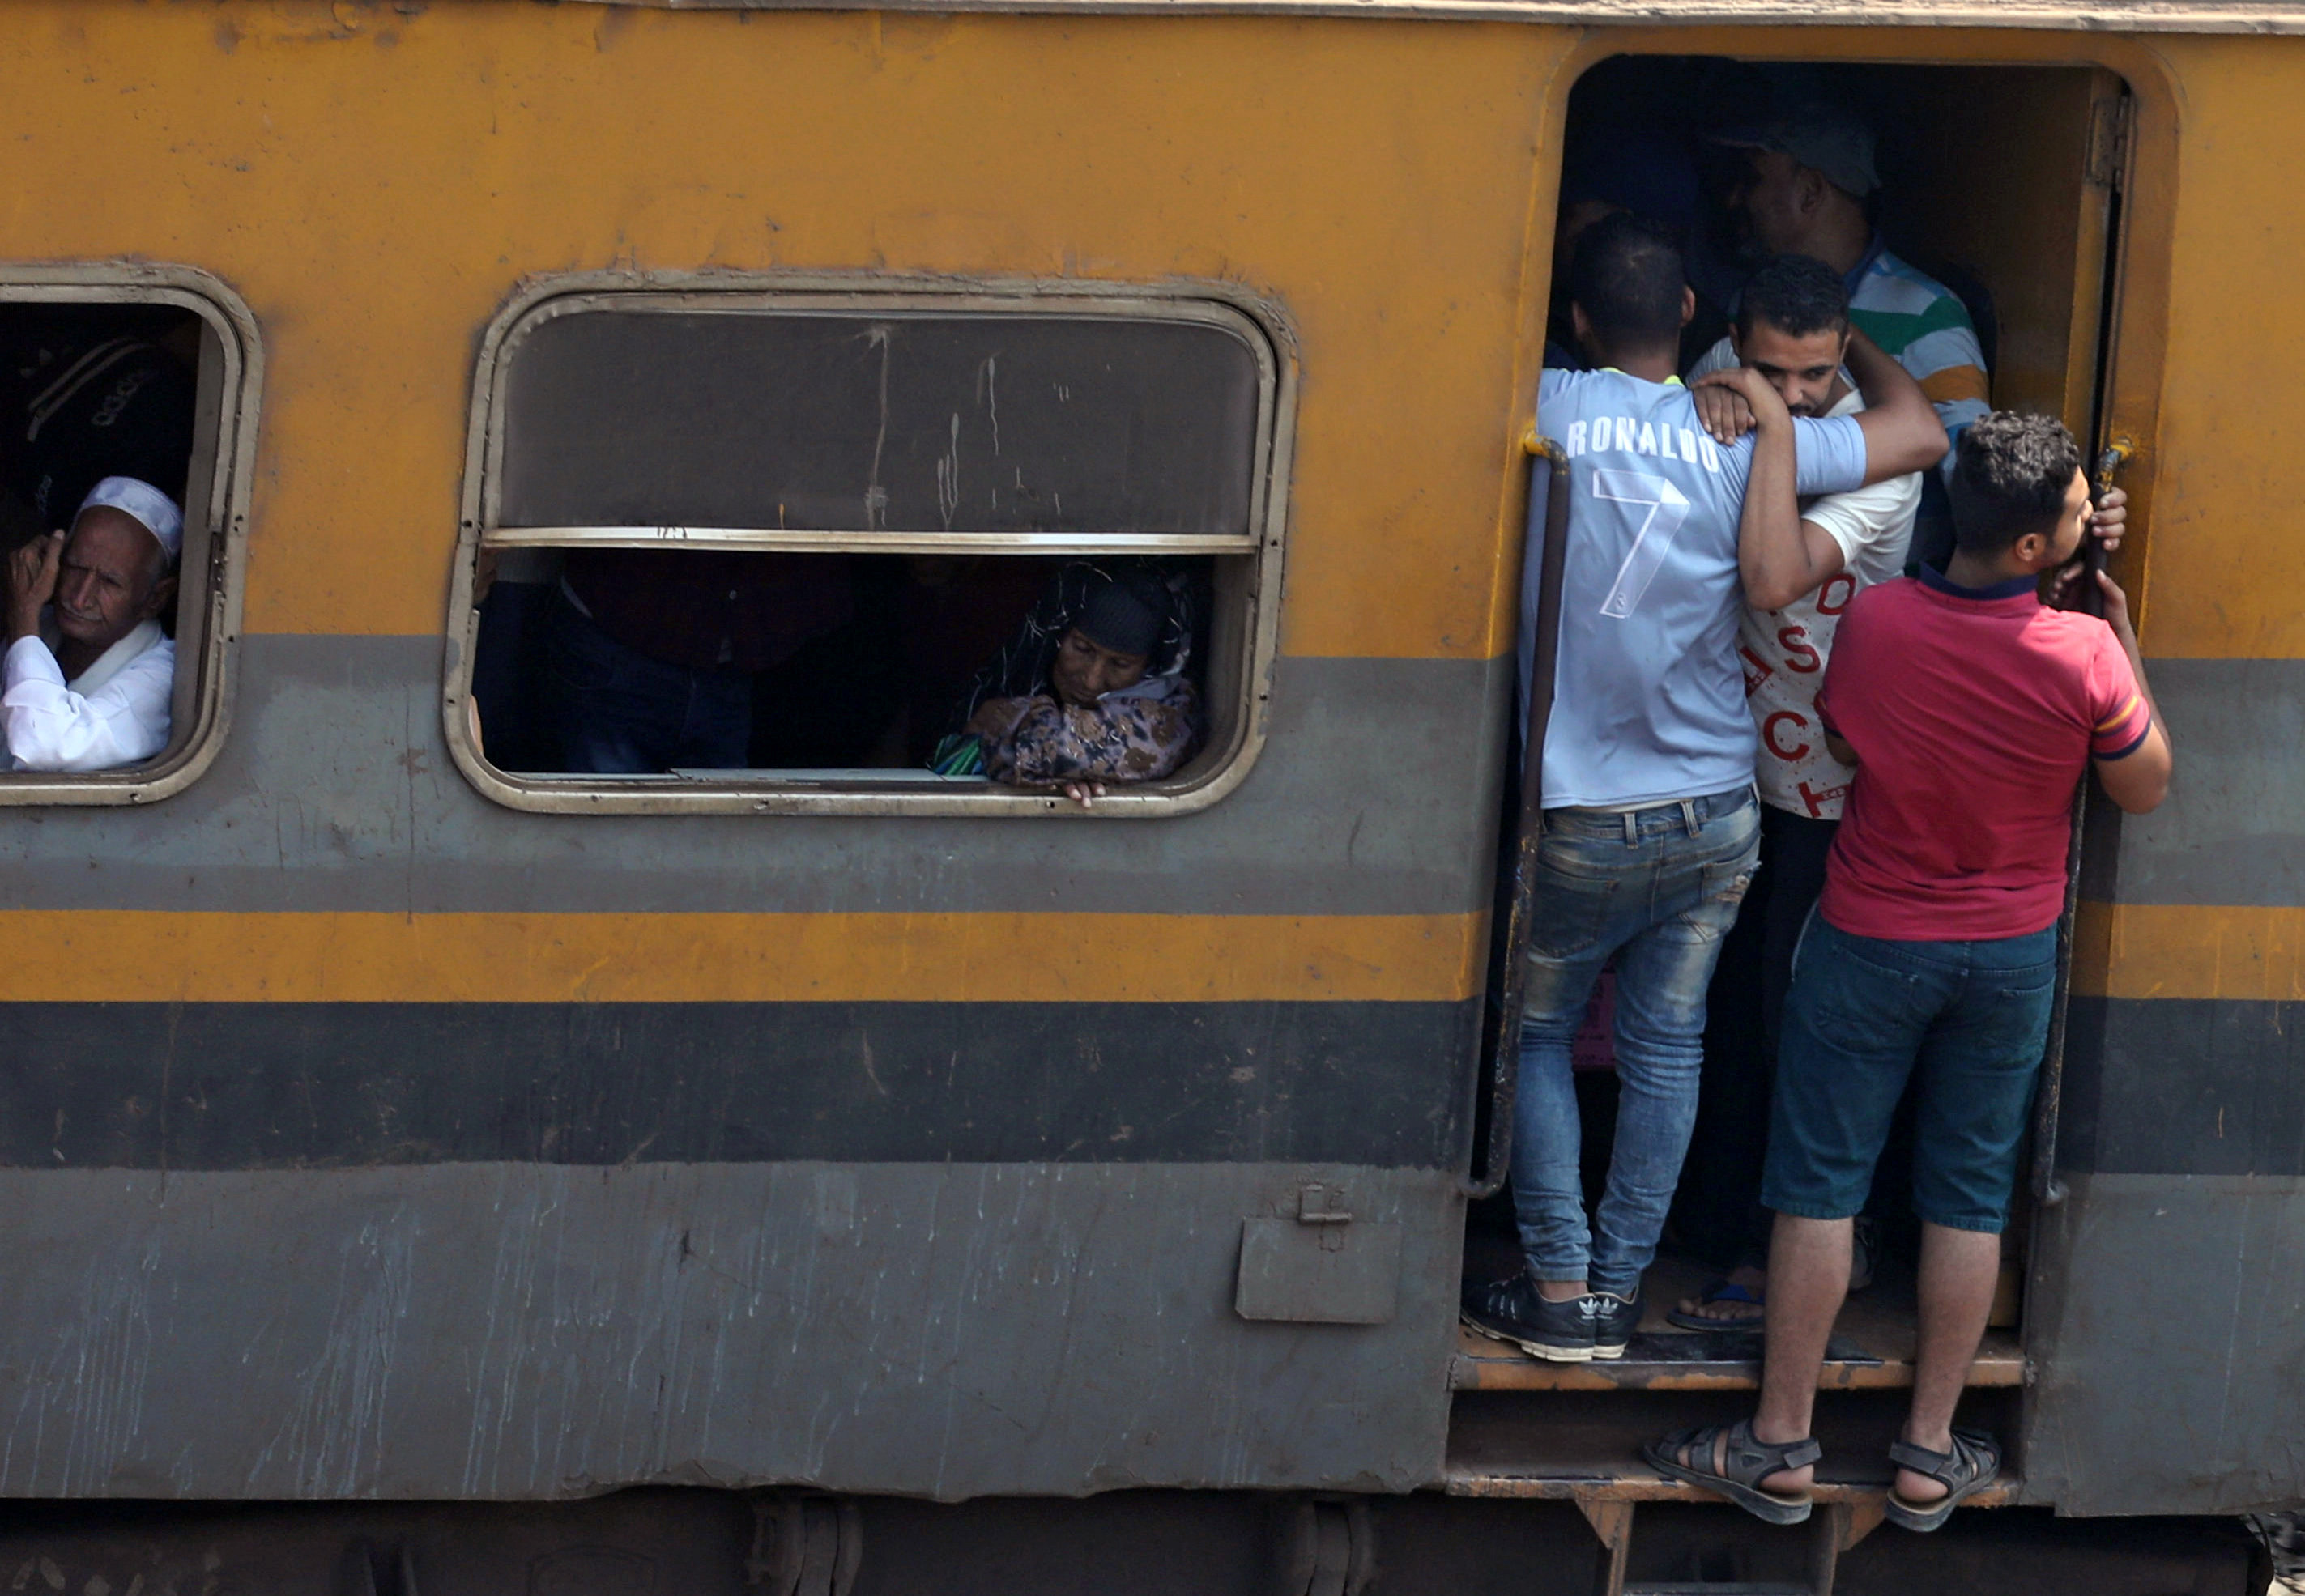 In pictures: Dangerous ride on trains in Egypt